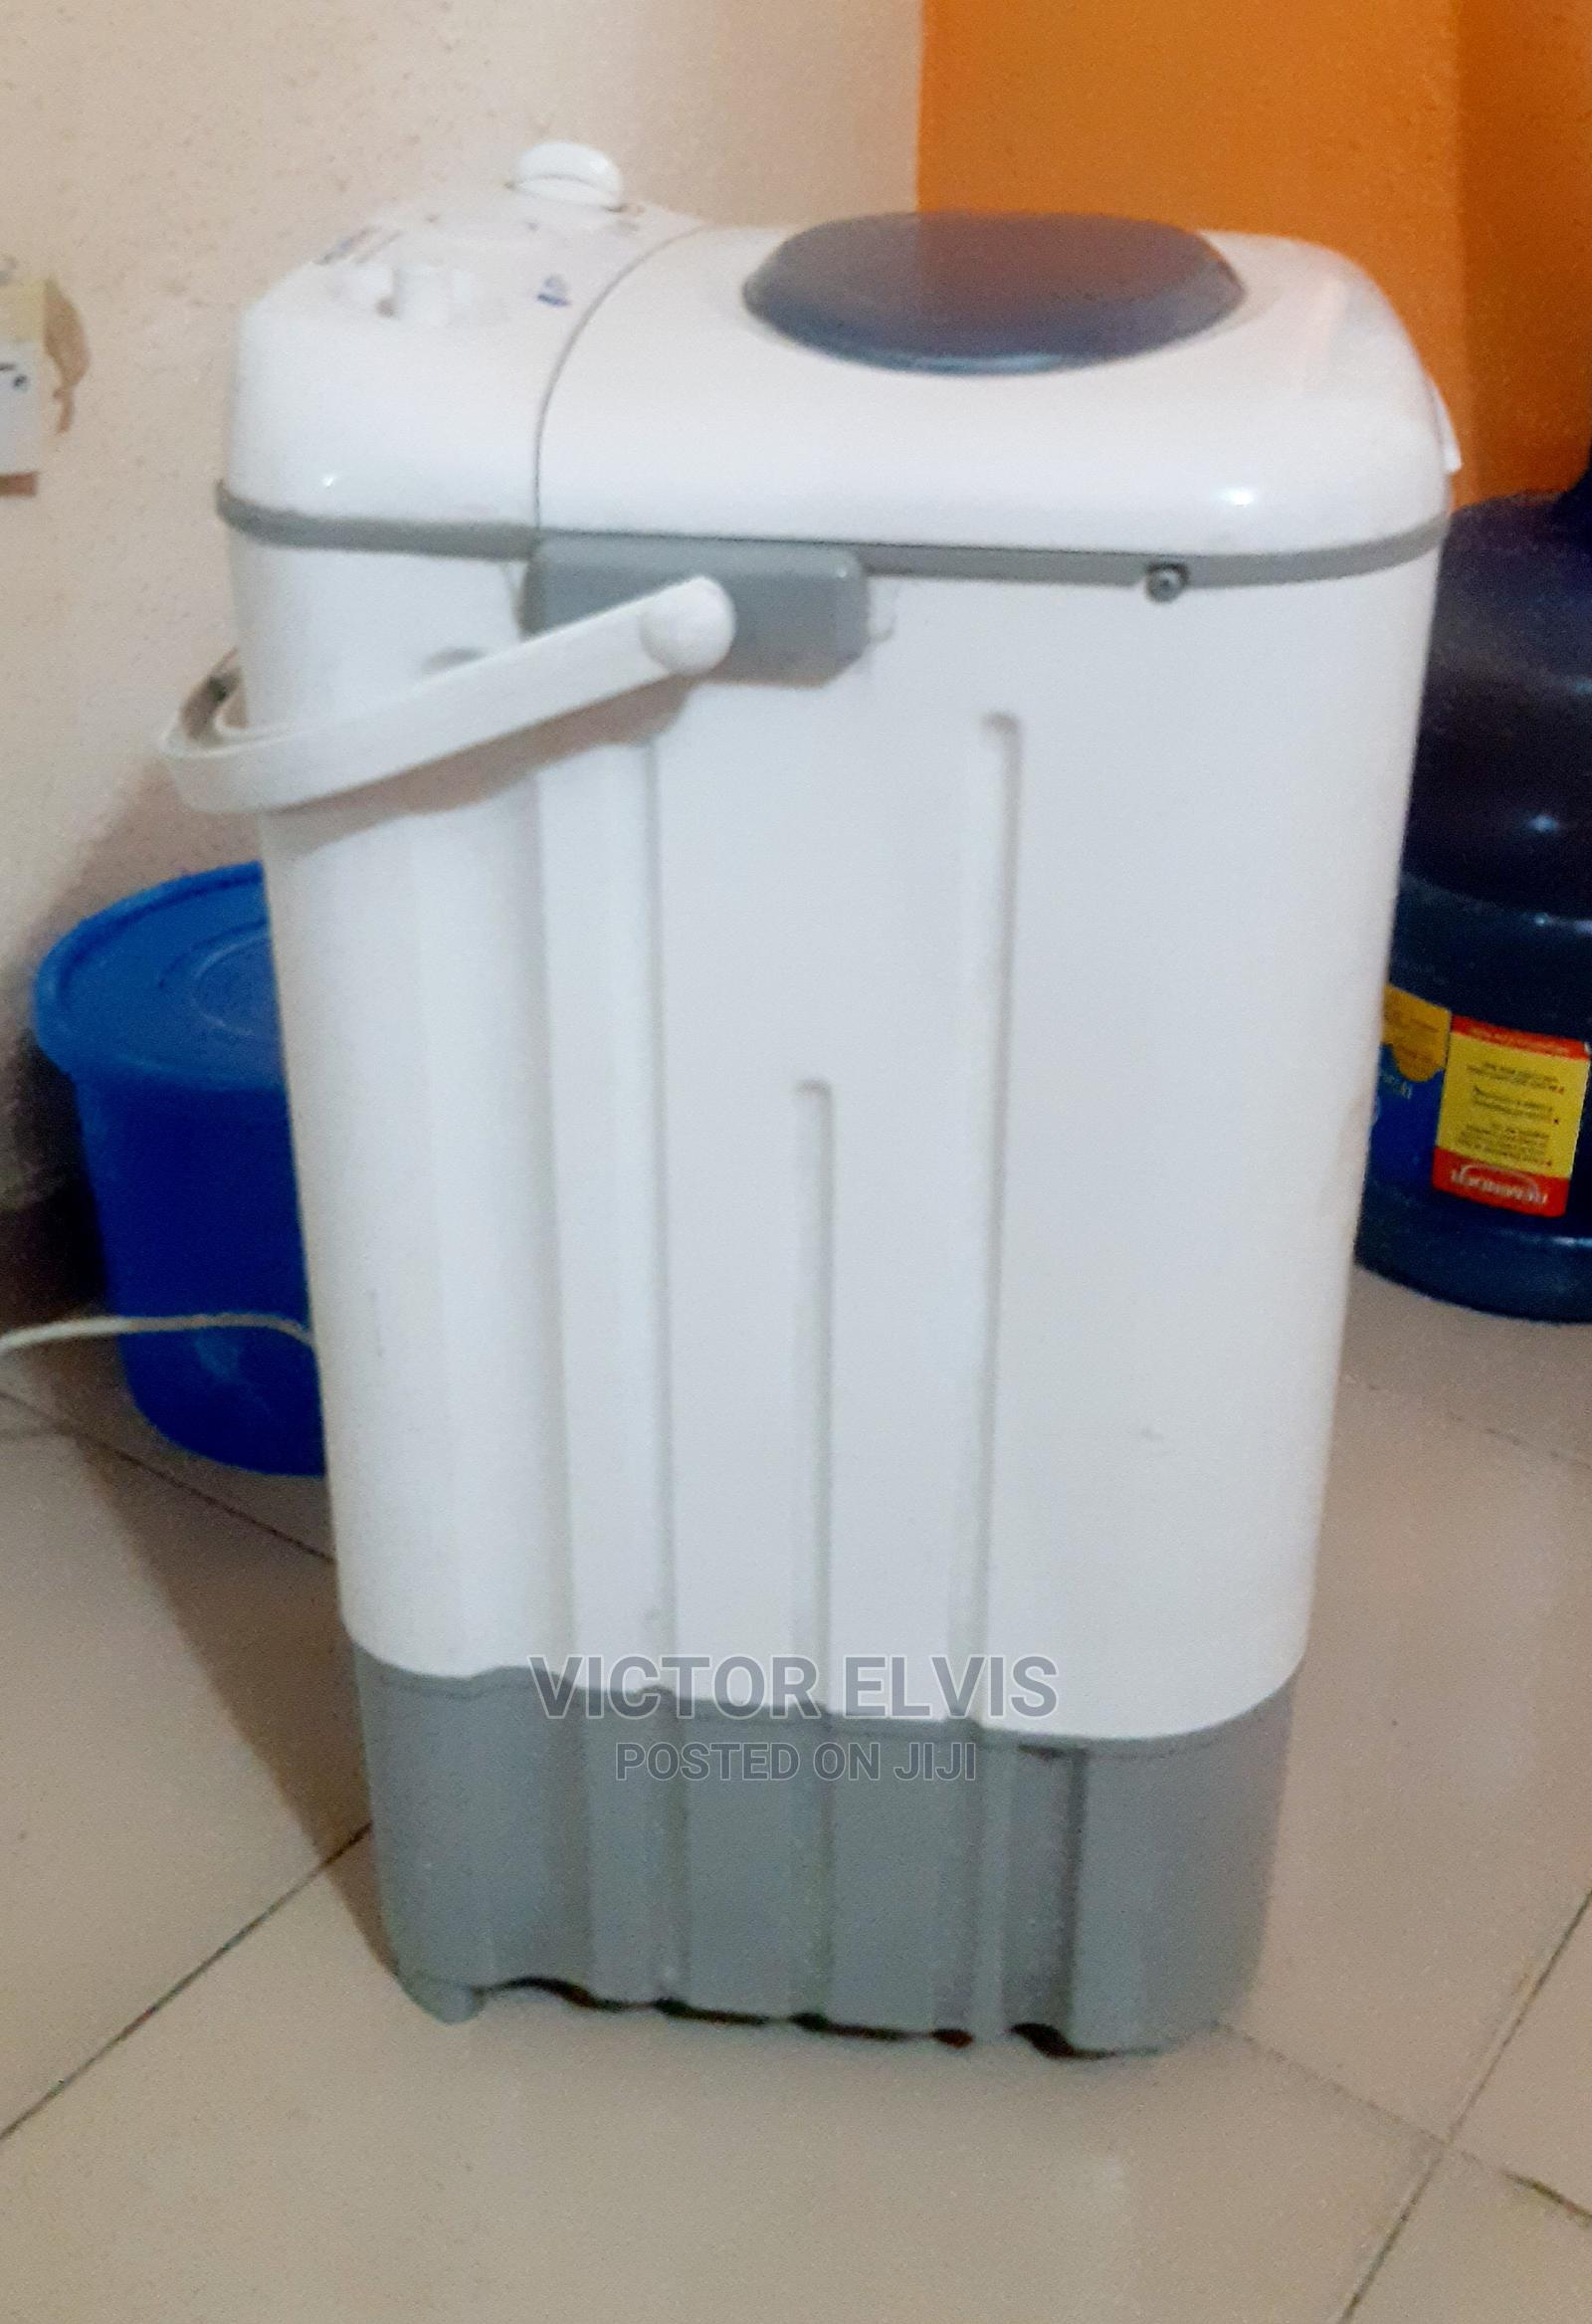 Archive: Washing Machine in Good Condition